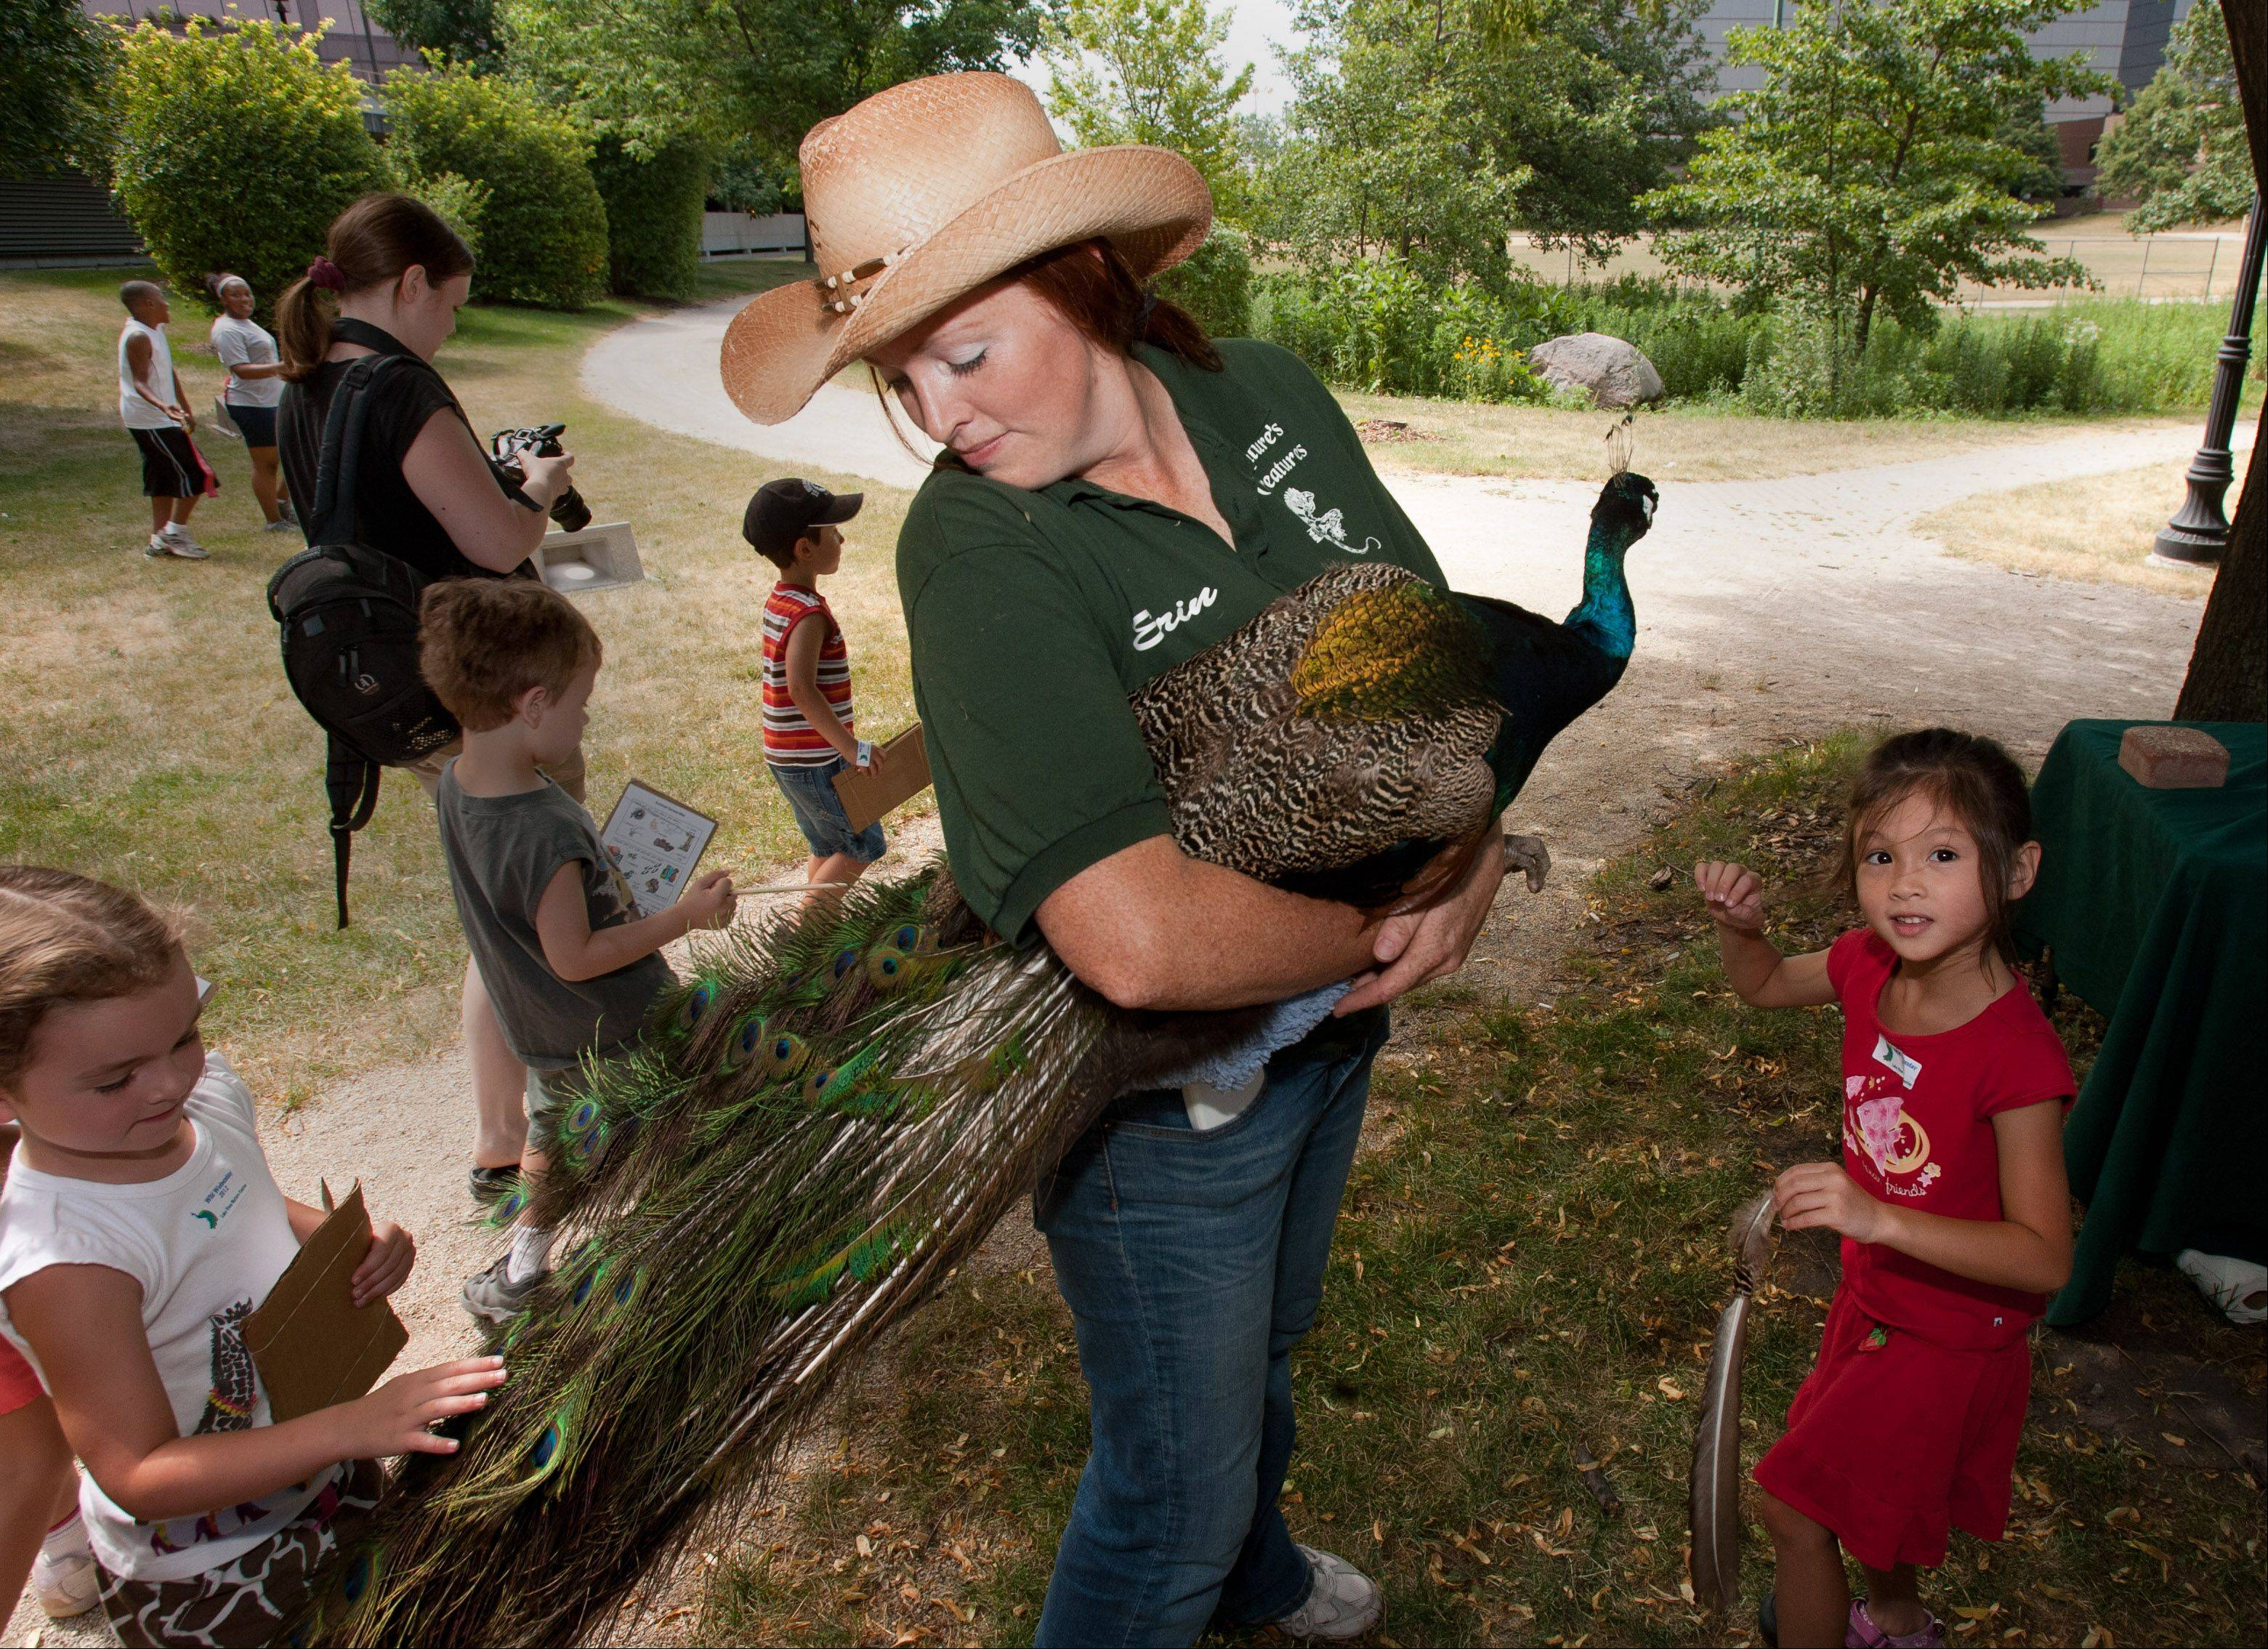 Erin Yanz of Nature's Creatures Animal Show in Monee shows a peacock from India during a Wild Wednesdays program at Lake View Nature Center in Oakbrook Terrace. Kalyn Gunn, right, 5, of Elmhurst, said she liked touching the feathers.